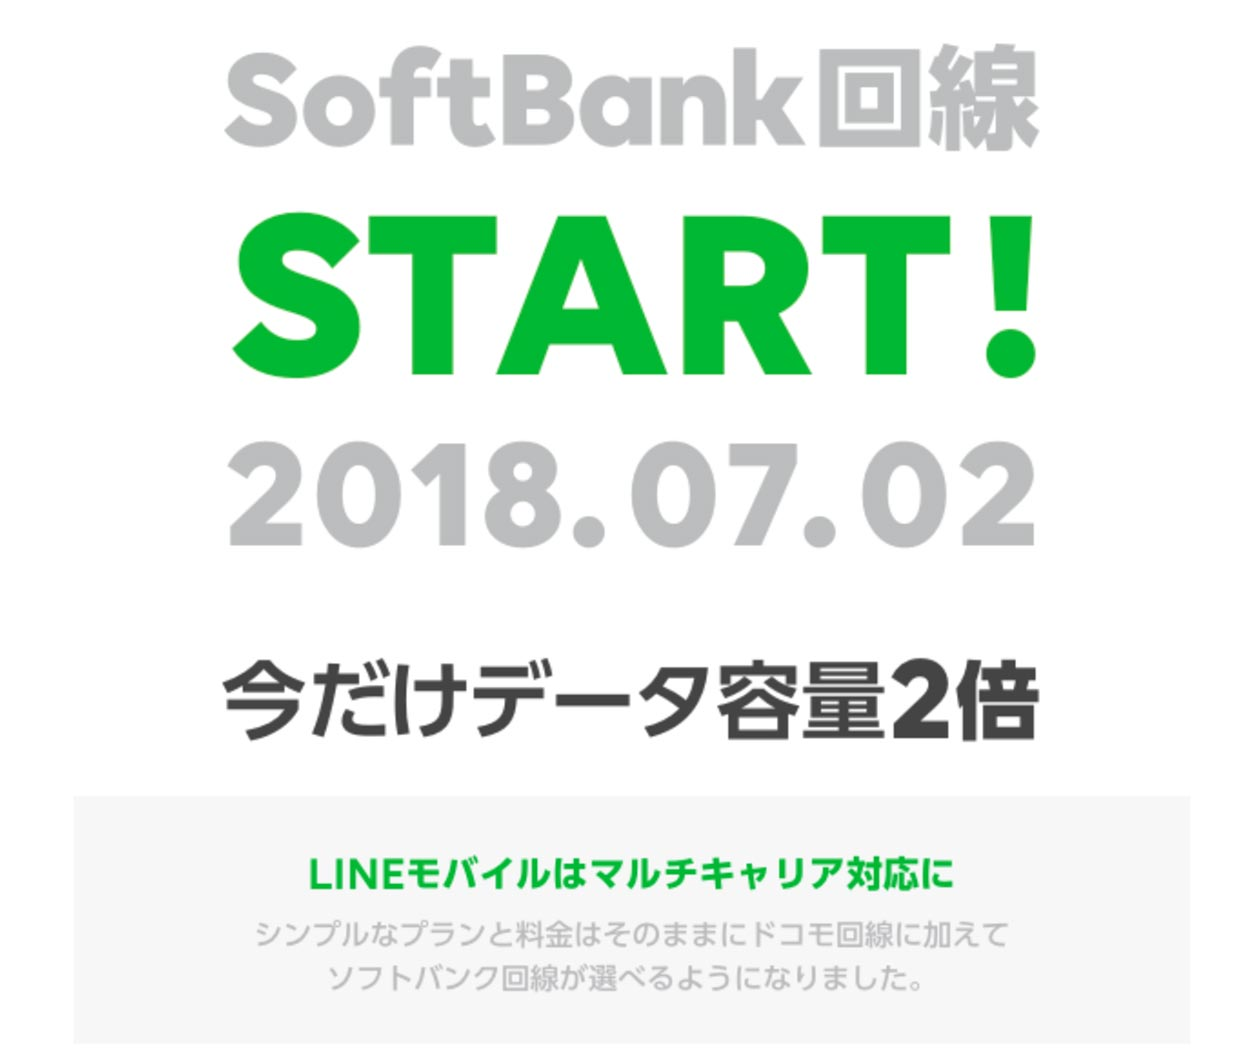 Softbankkaisenlinemobile